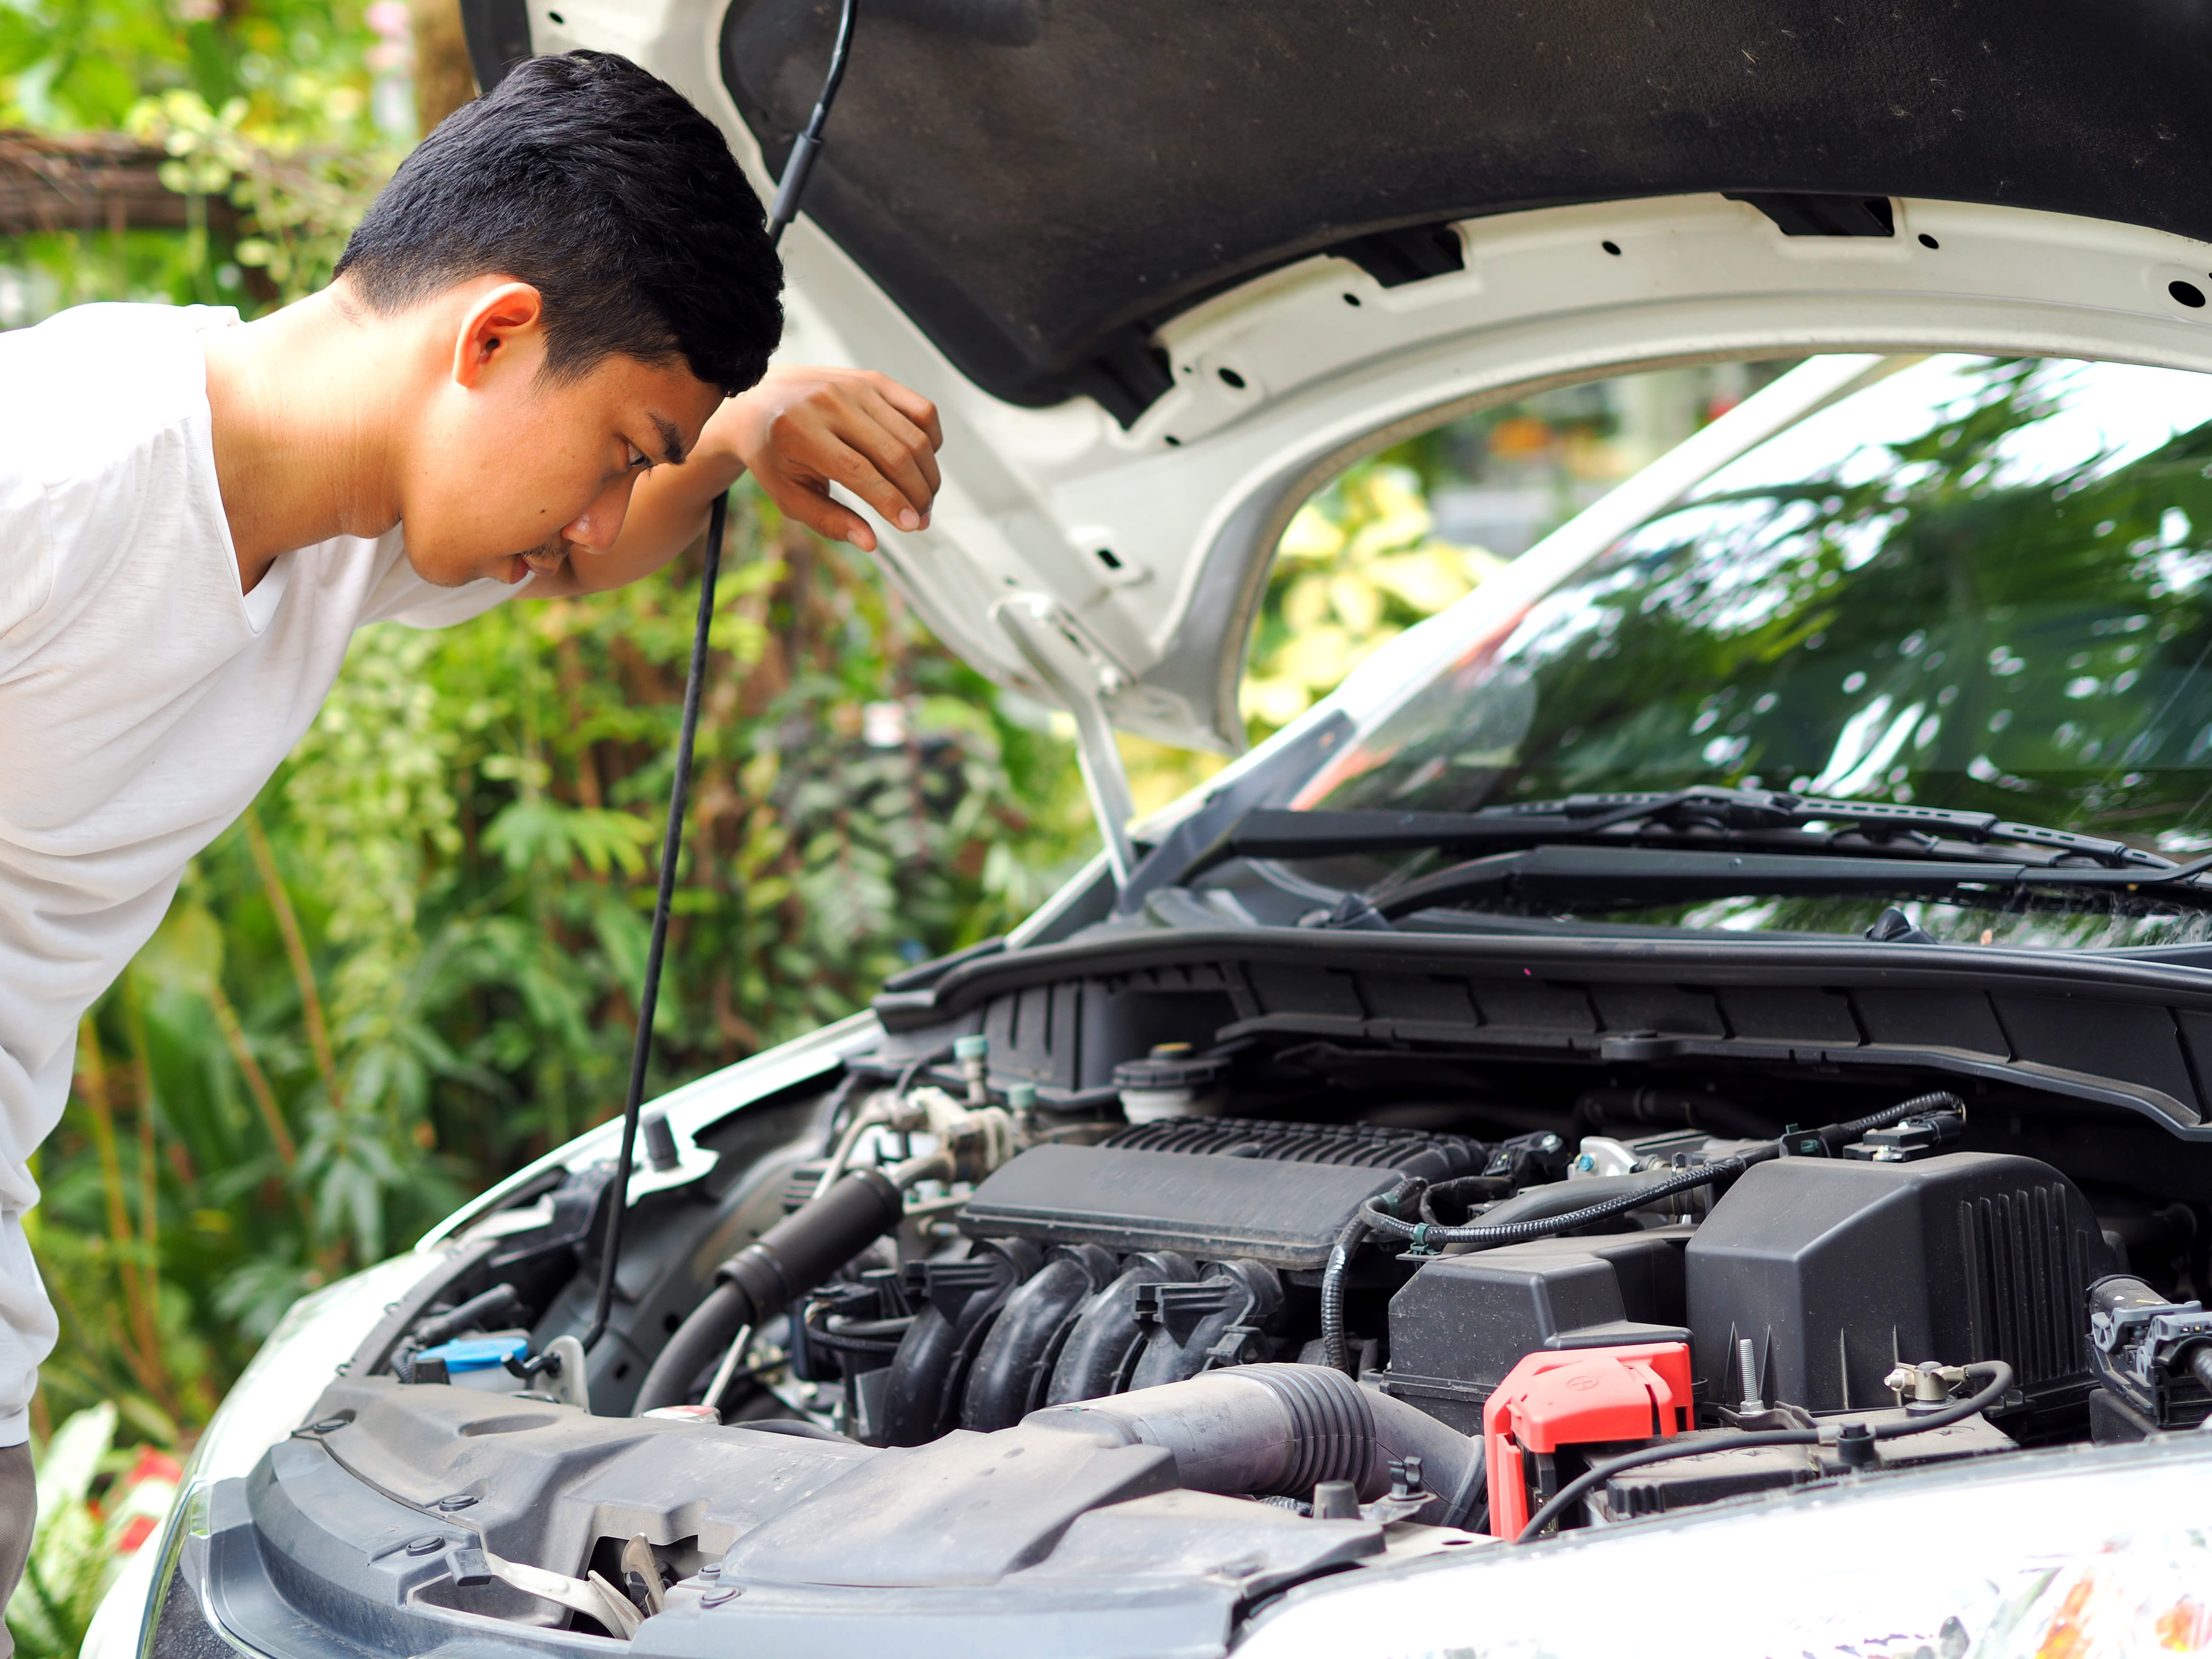 Man in White Tshirt Looking at Engine for Car Maintenance